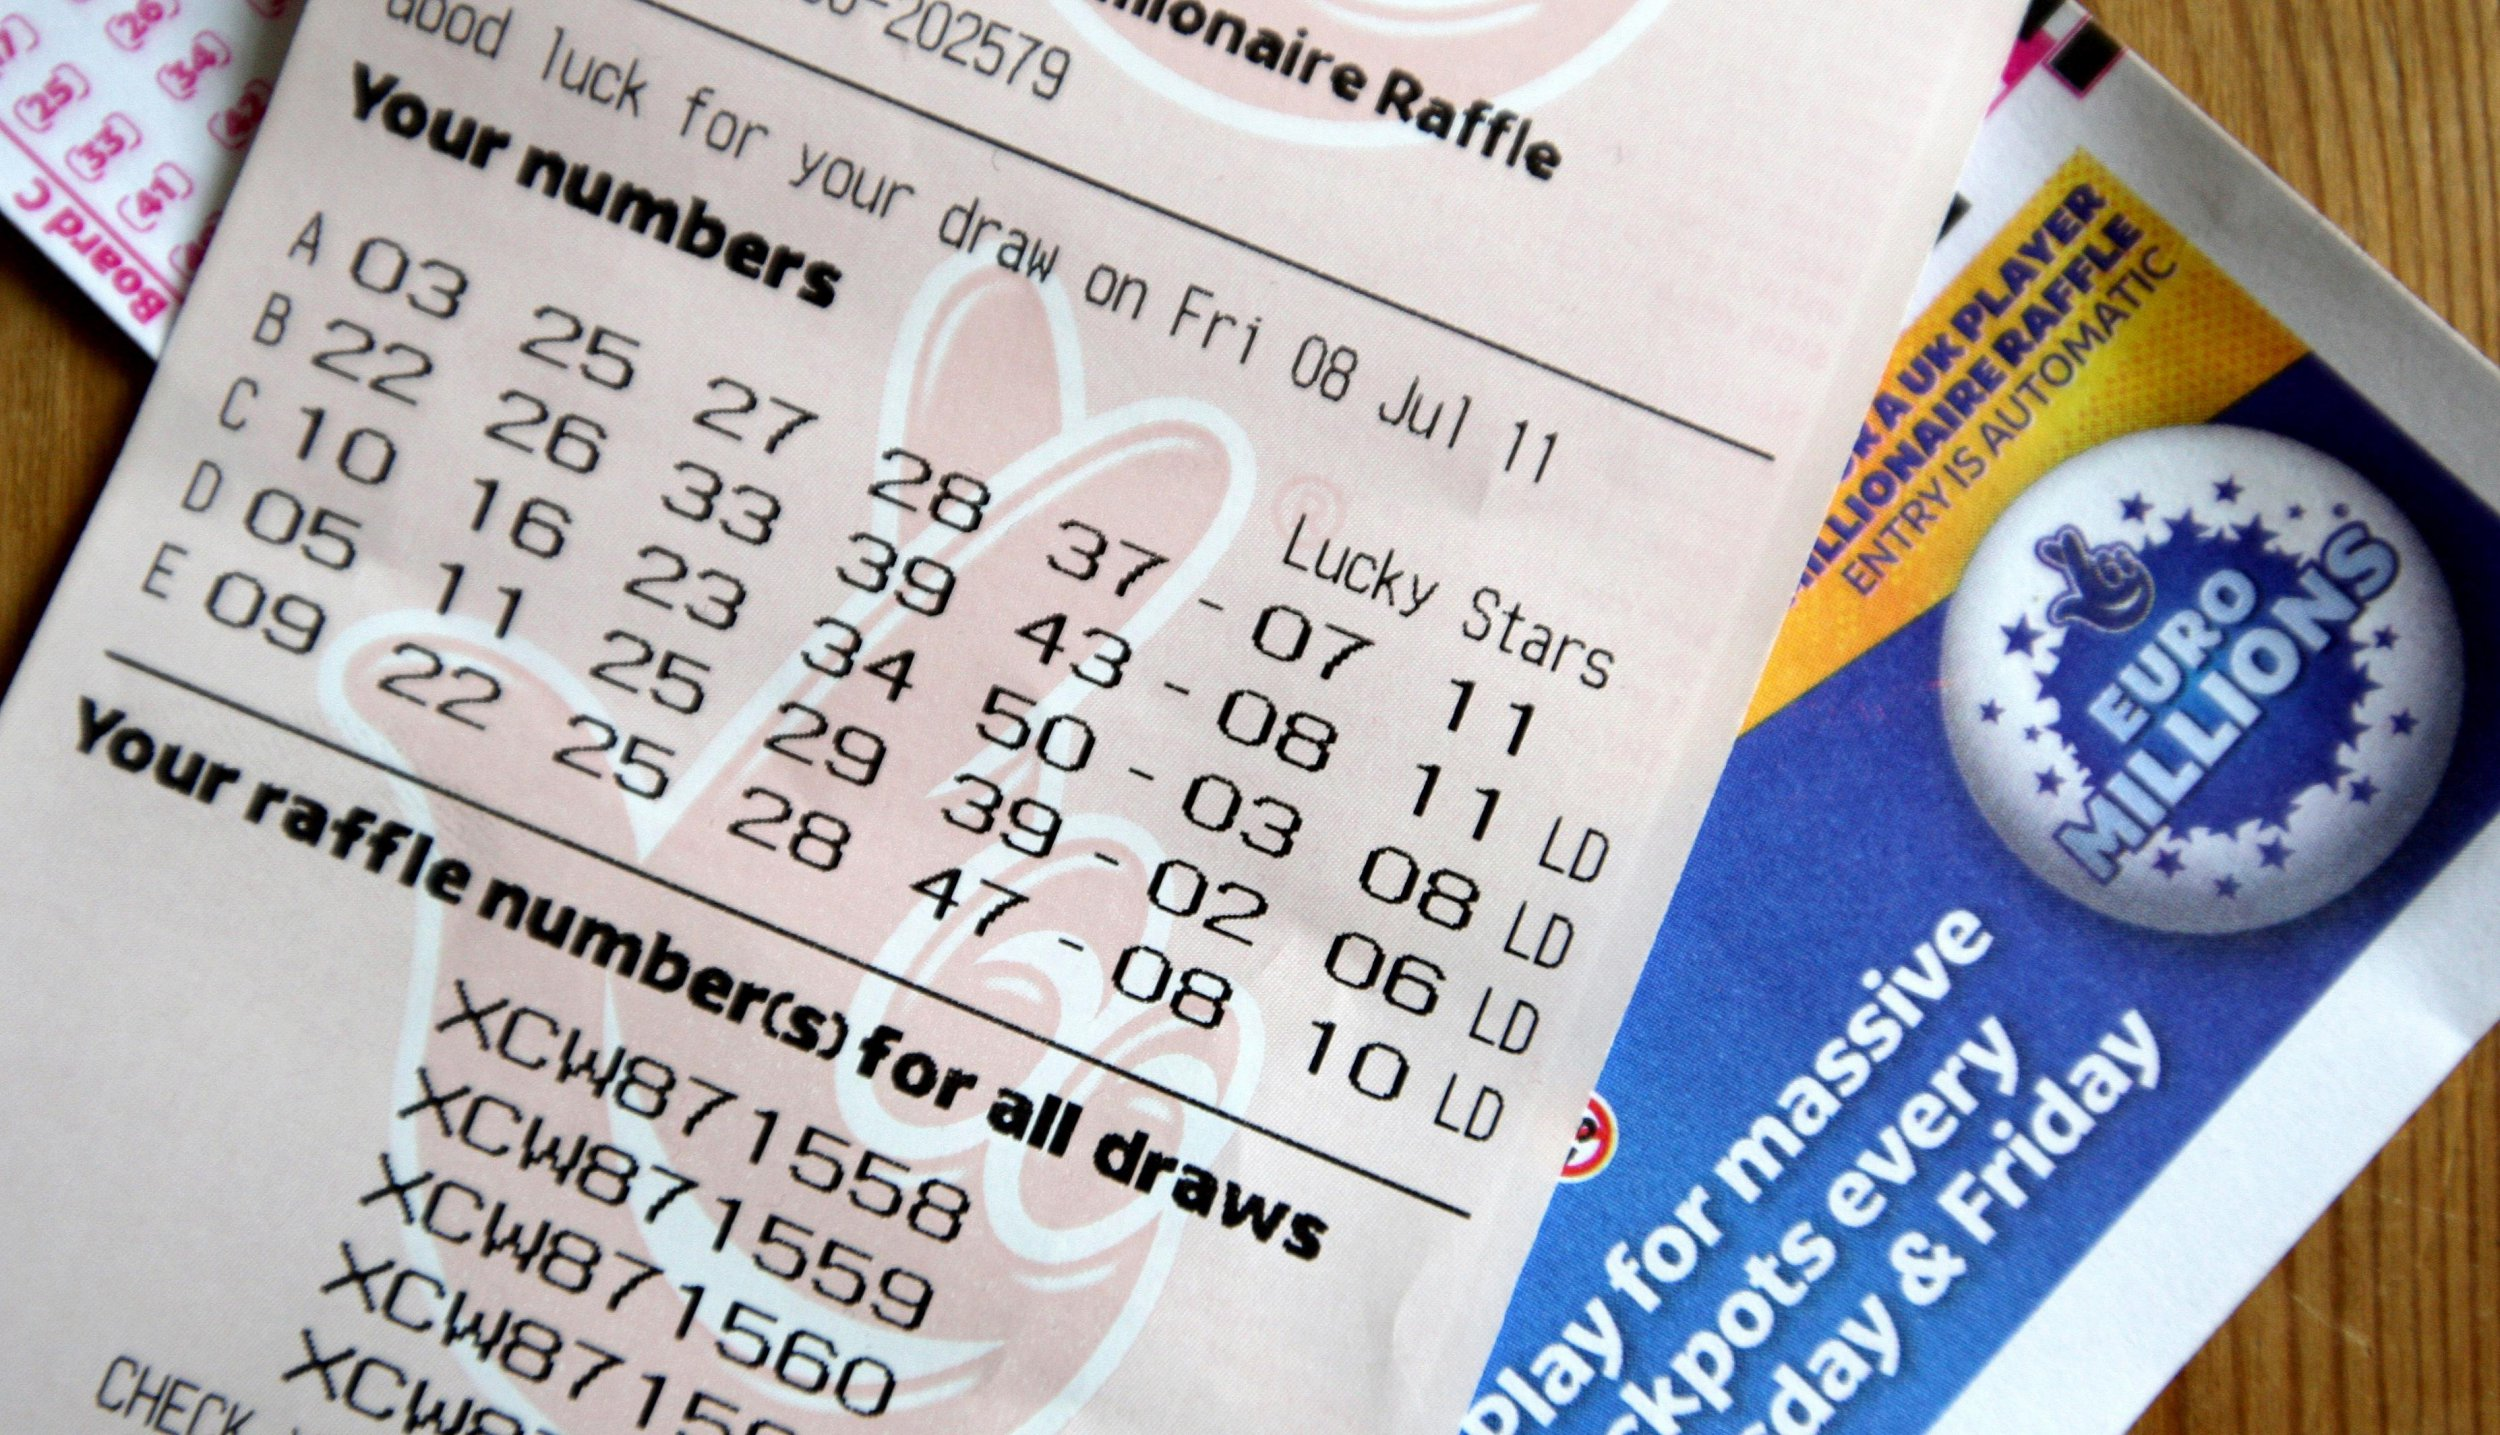 Lotto Euromillions When Is The Next Euromillions Draw And What Is The New Jackpot